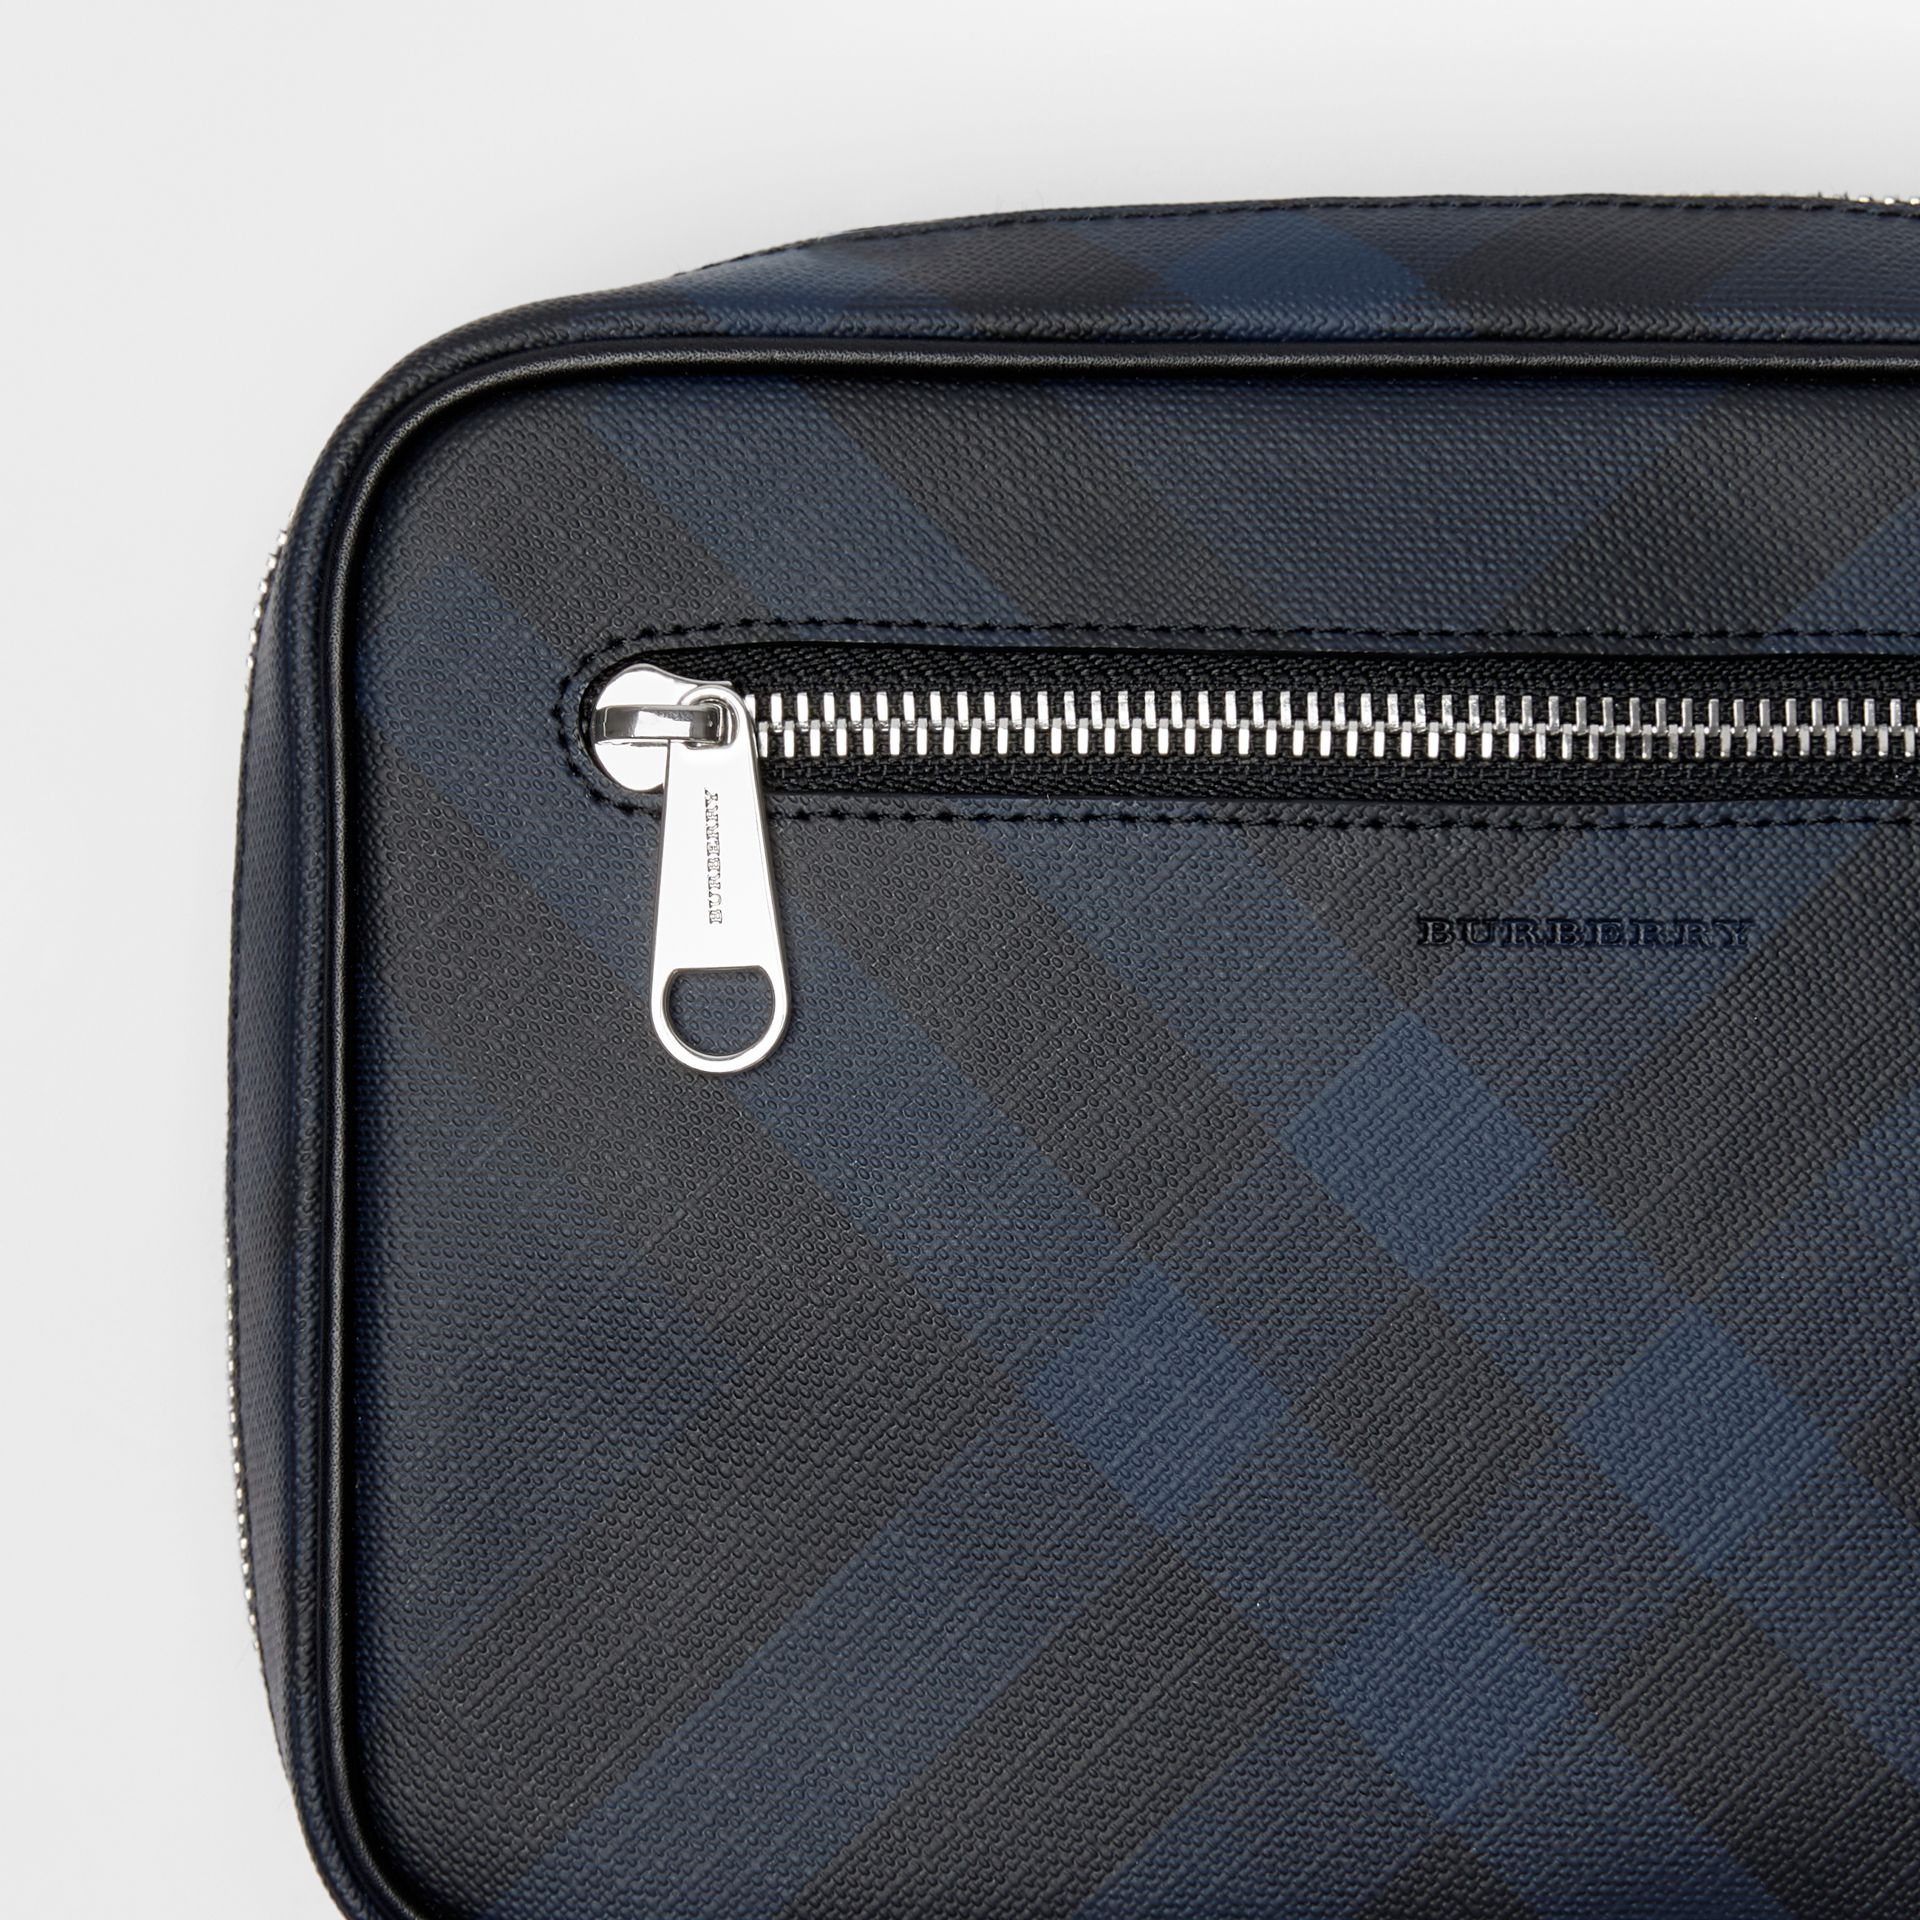 London Check Travel Pouch in Navy/black - Men | Burberry - gallery image 1